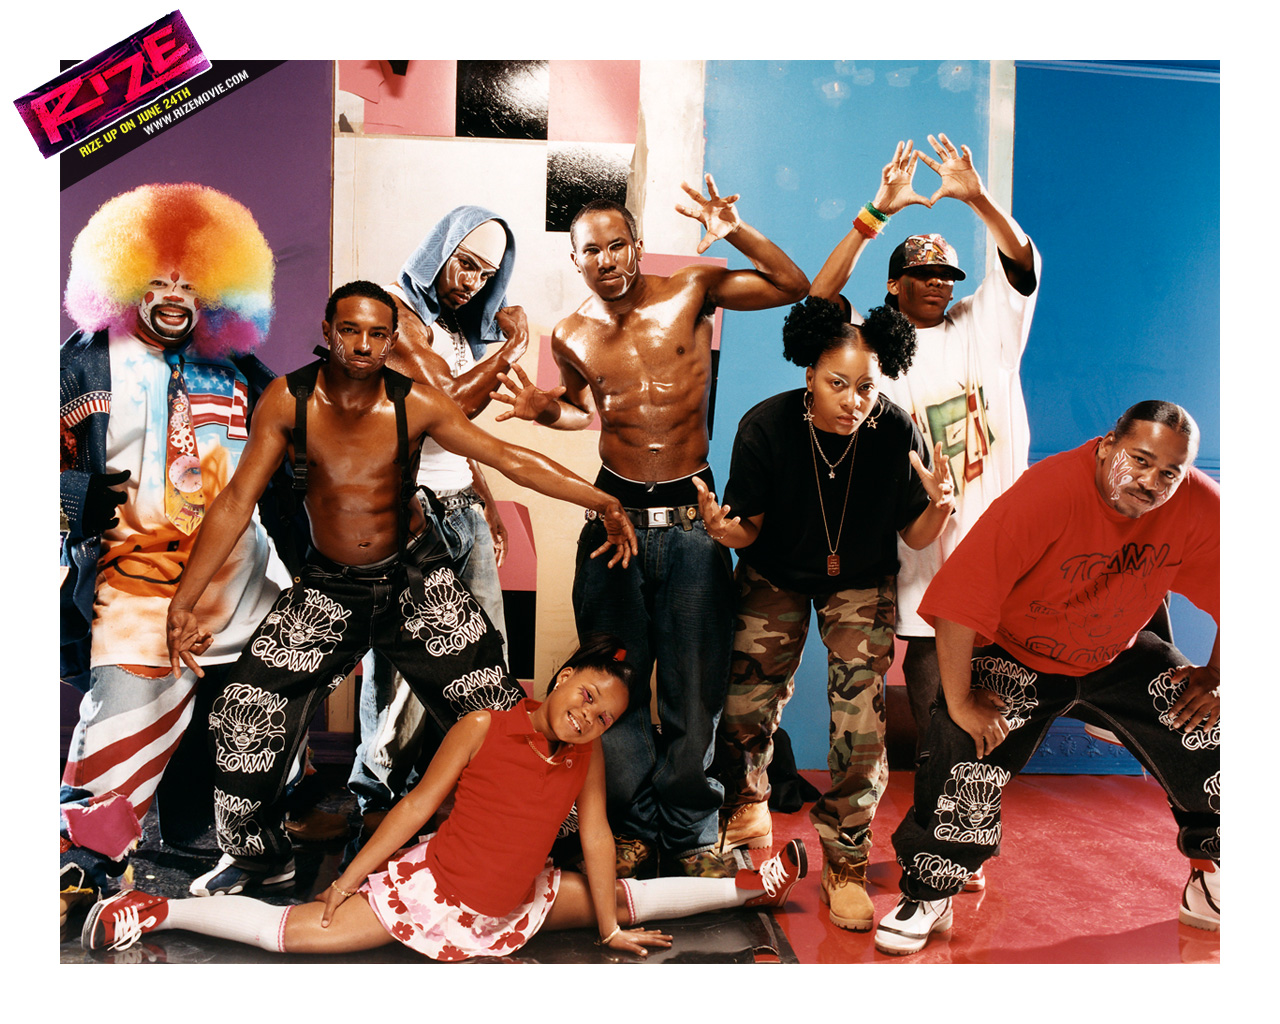 rize documentary A documentary film that highlights two street derived dance styles, clowing and krumping, that came out of the low income neighborhoods of la director david lachapelle interview.